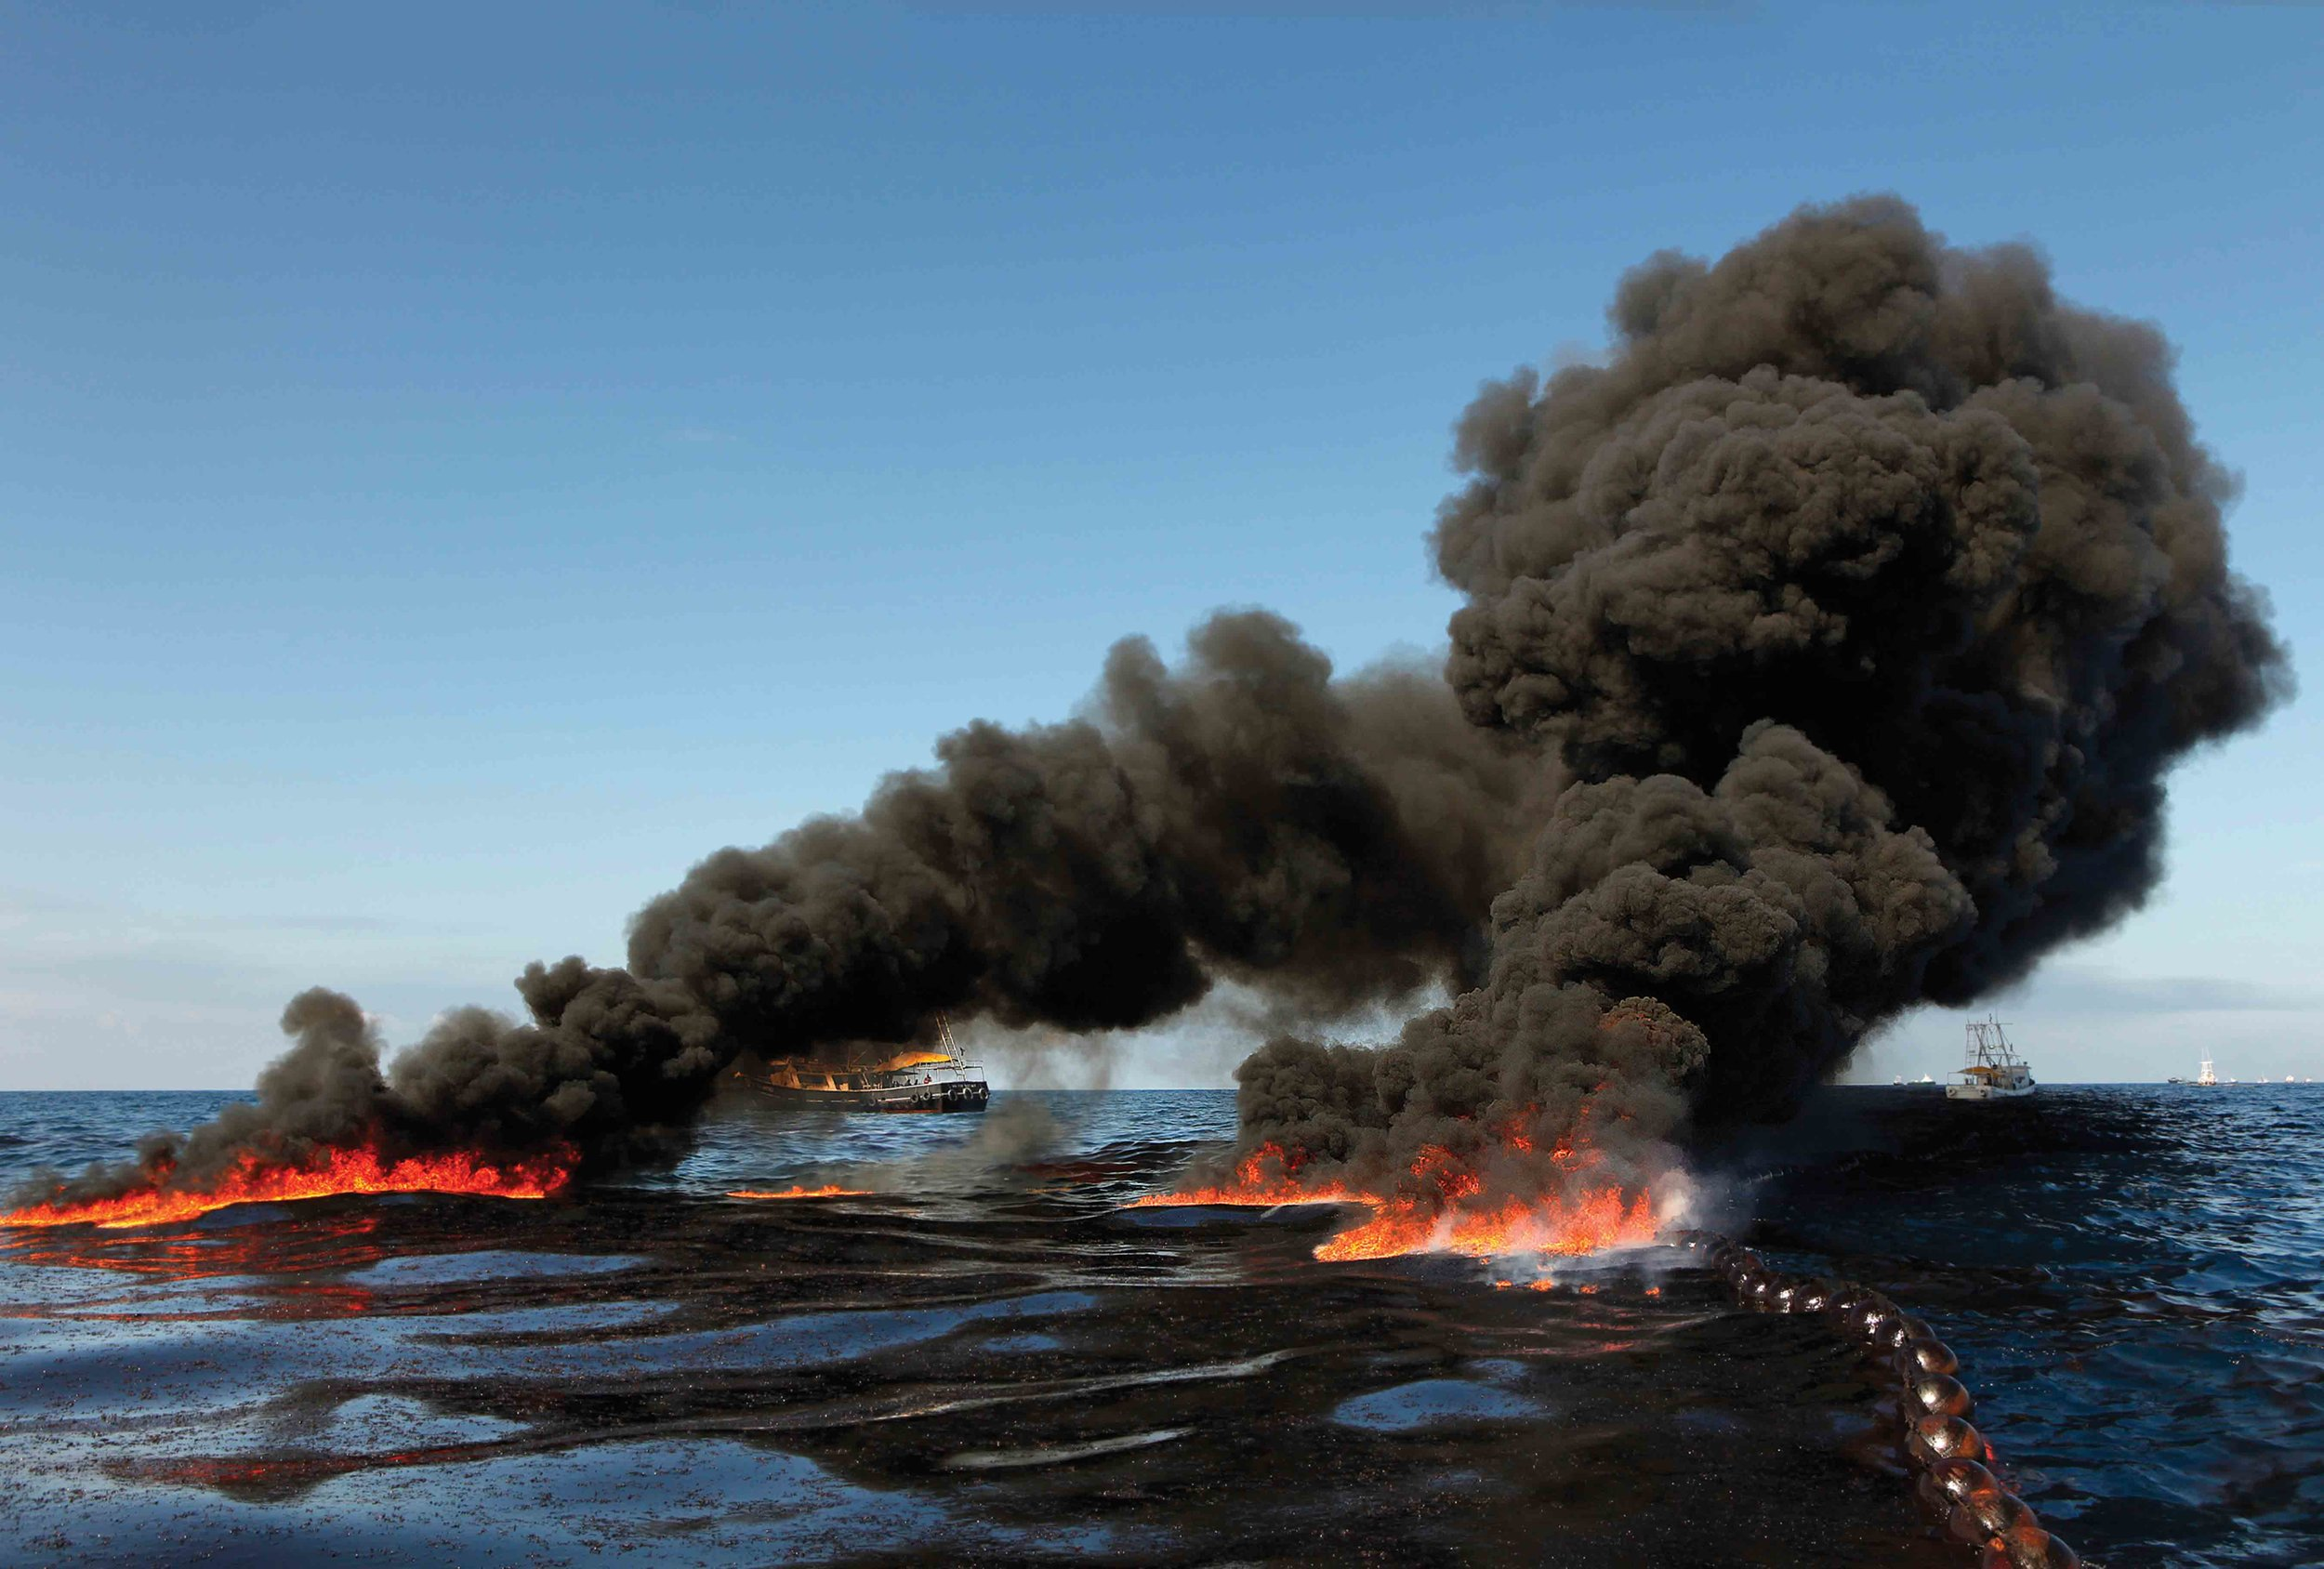 On April 20, 2010, an explosion occurred on the Deepwater Horizon oil rig off the coast of Louisiana, U.S.A., that caused oil to spill into the Gulf of Mexico at an alarming rate—35,000 to 60,000 barrels per day. The oil continued to flow for months before the well could be successfully capped, causing untold damage to the marine and coastal environment. © Carolyn Cole / Los Angeles Time